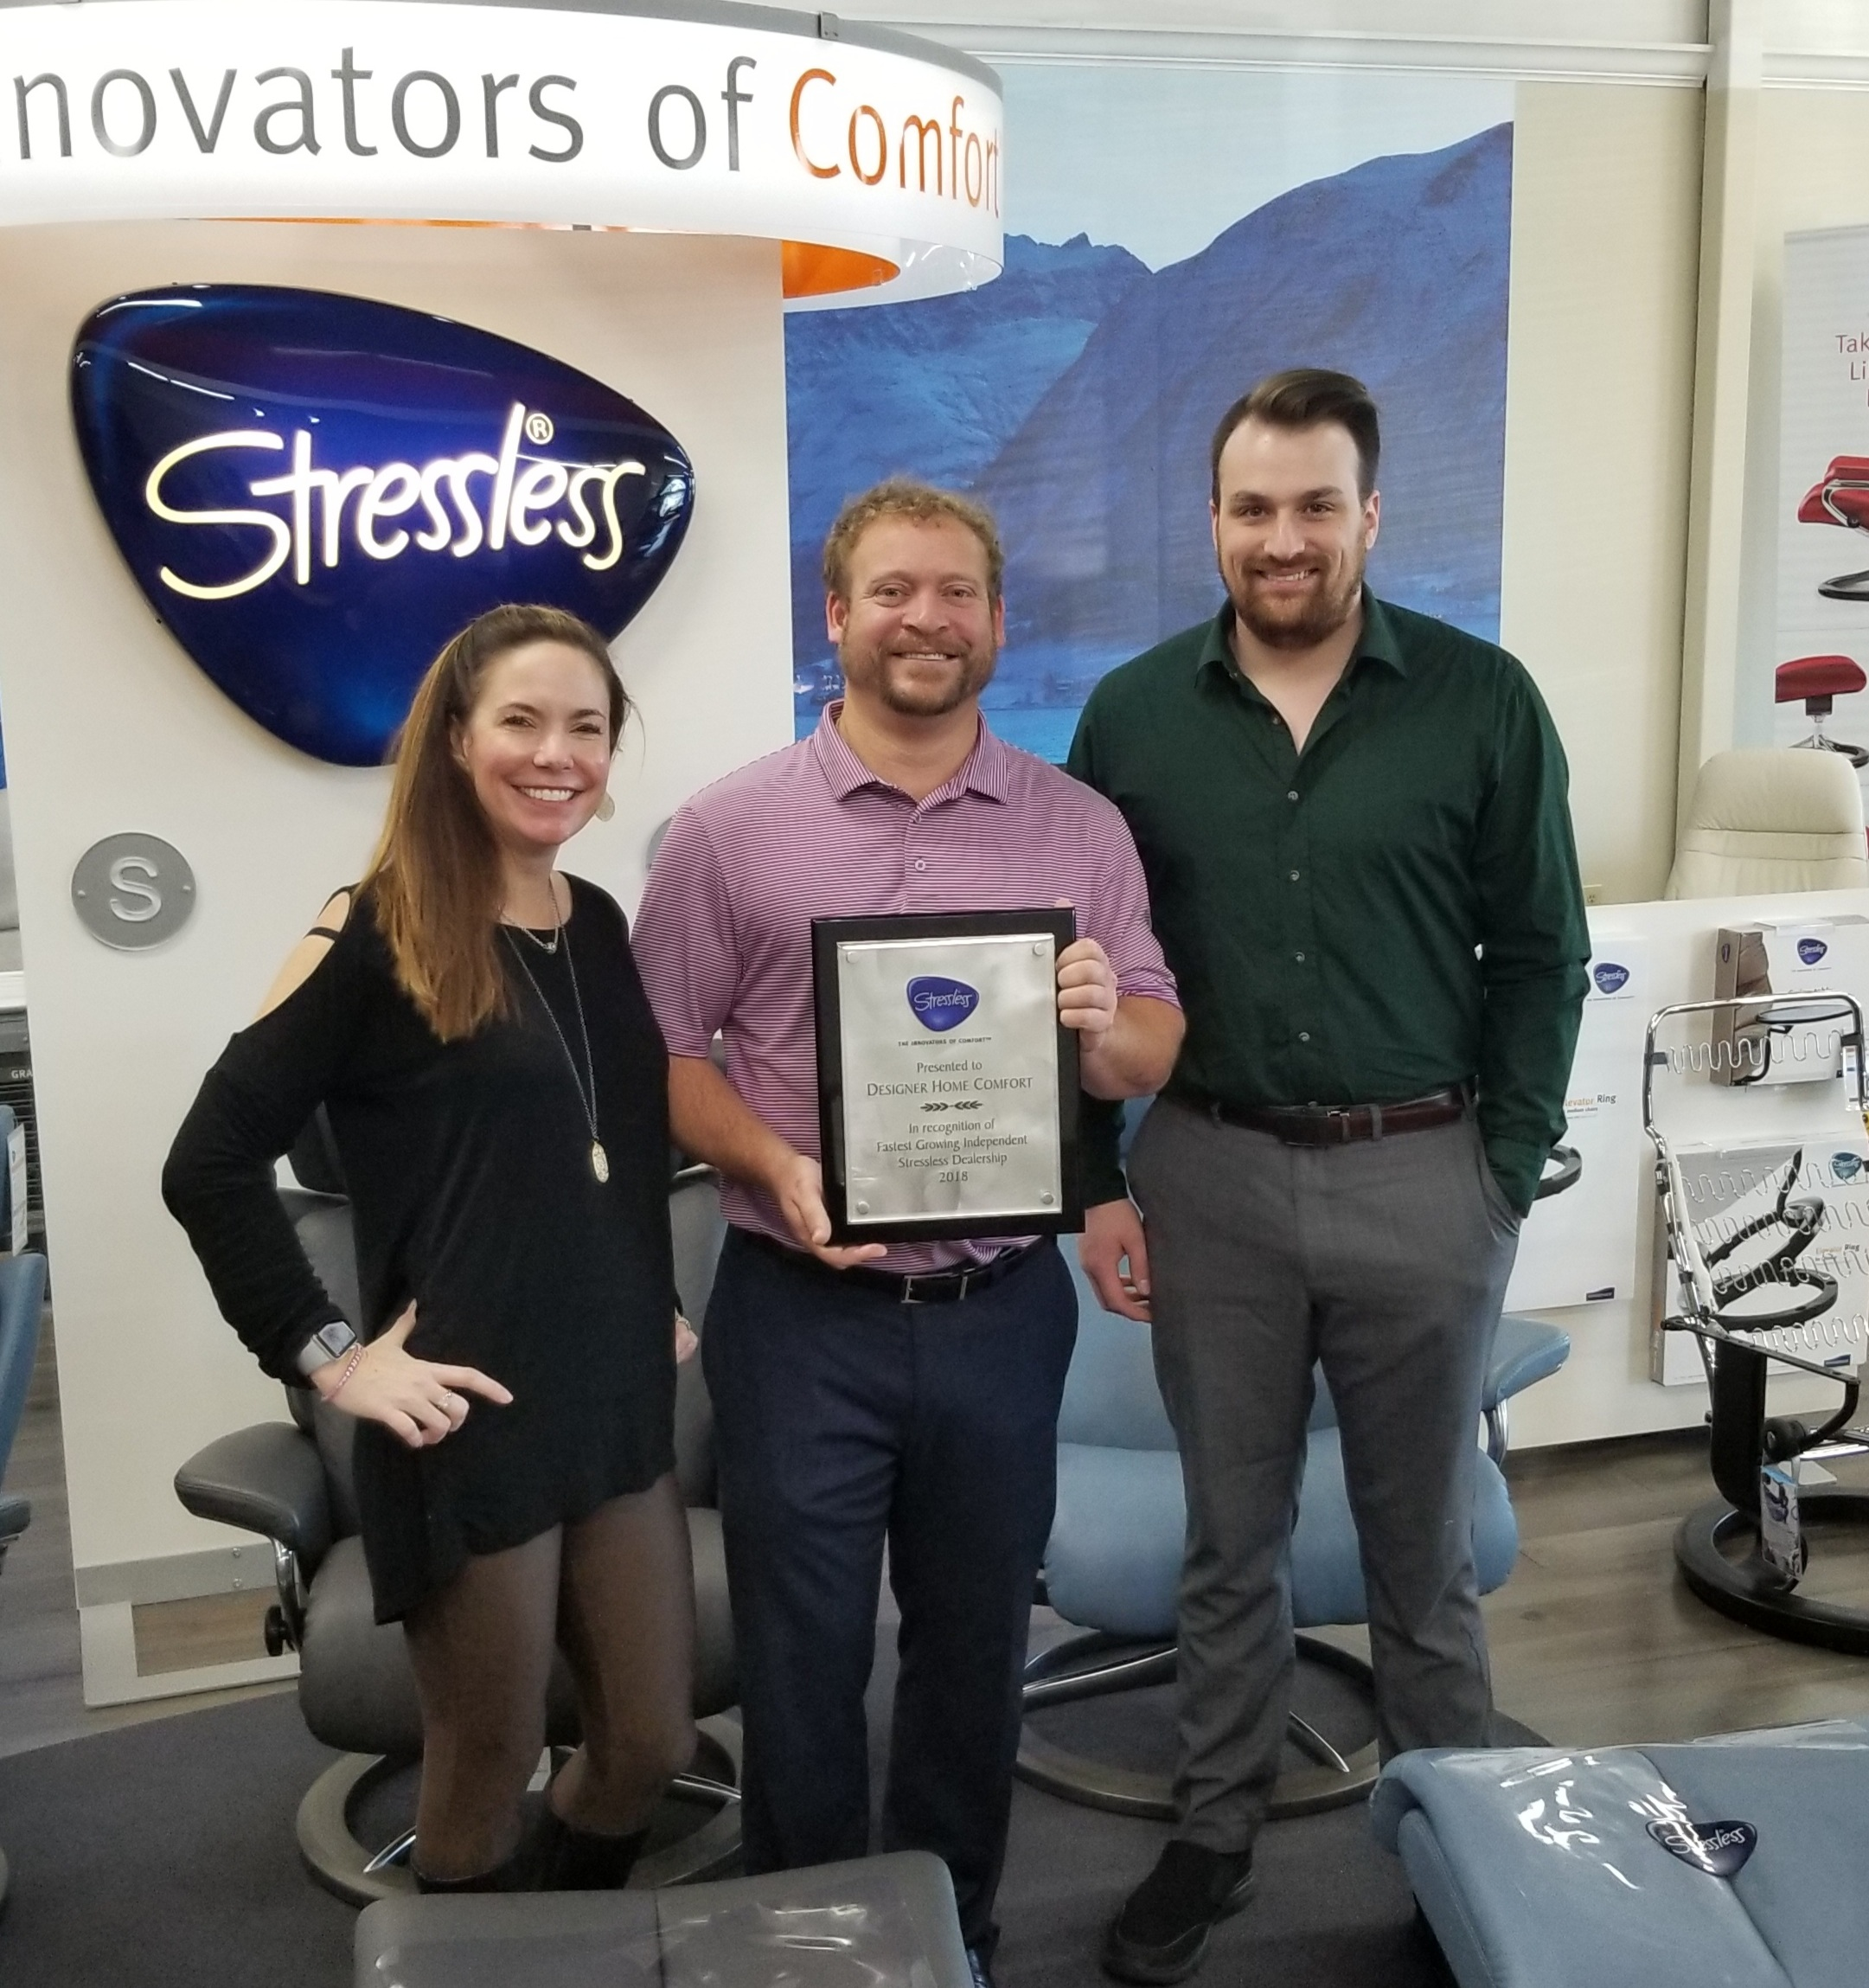 Receiving an Award From Ekornes - Fasting Growing Dealership!